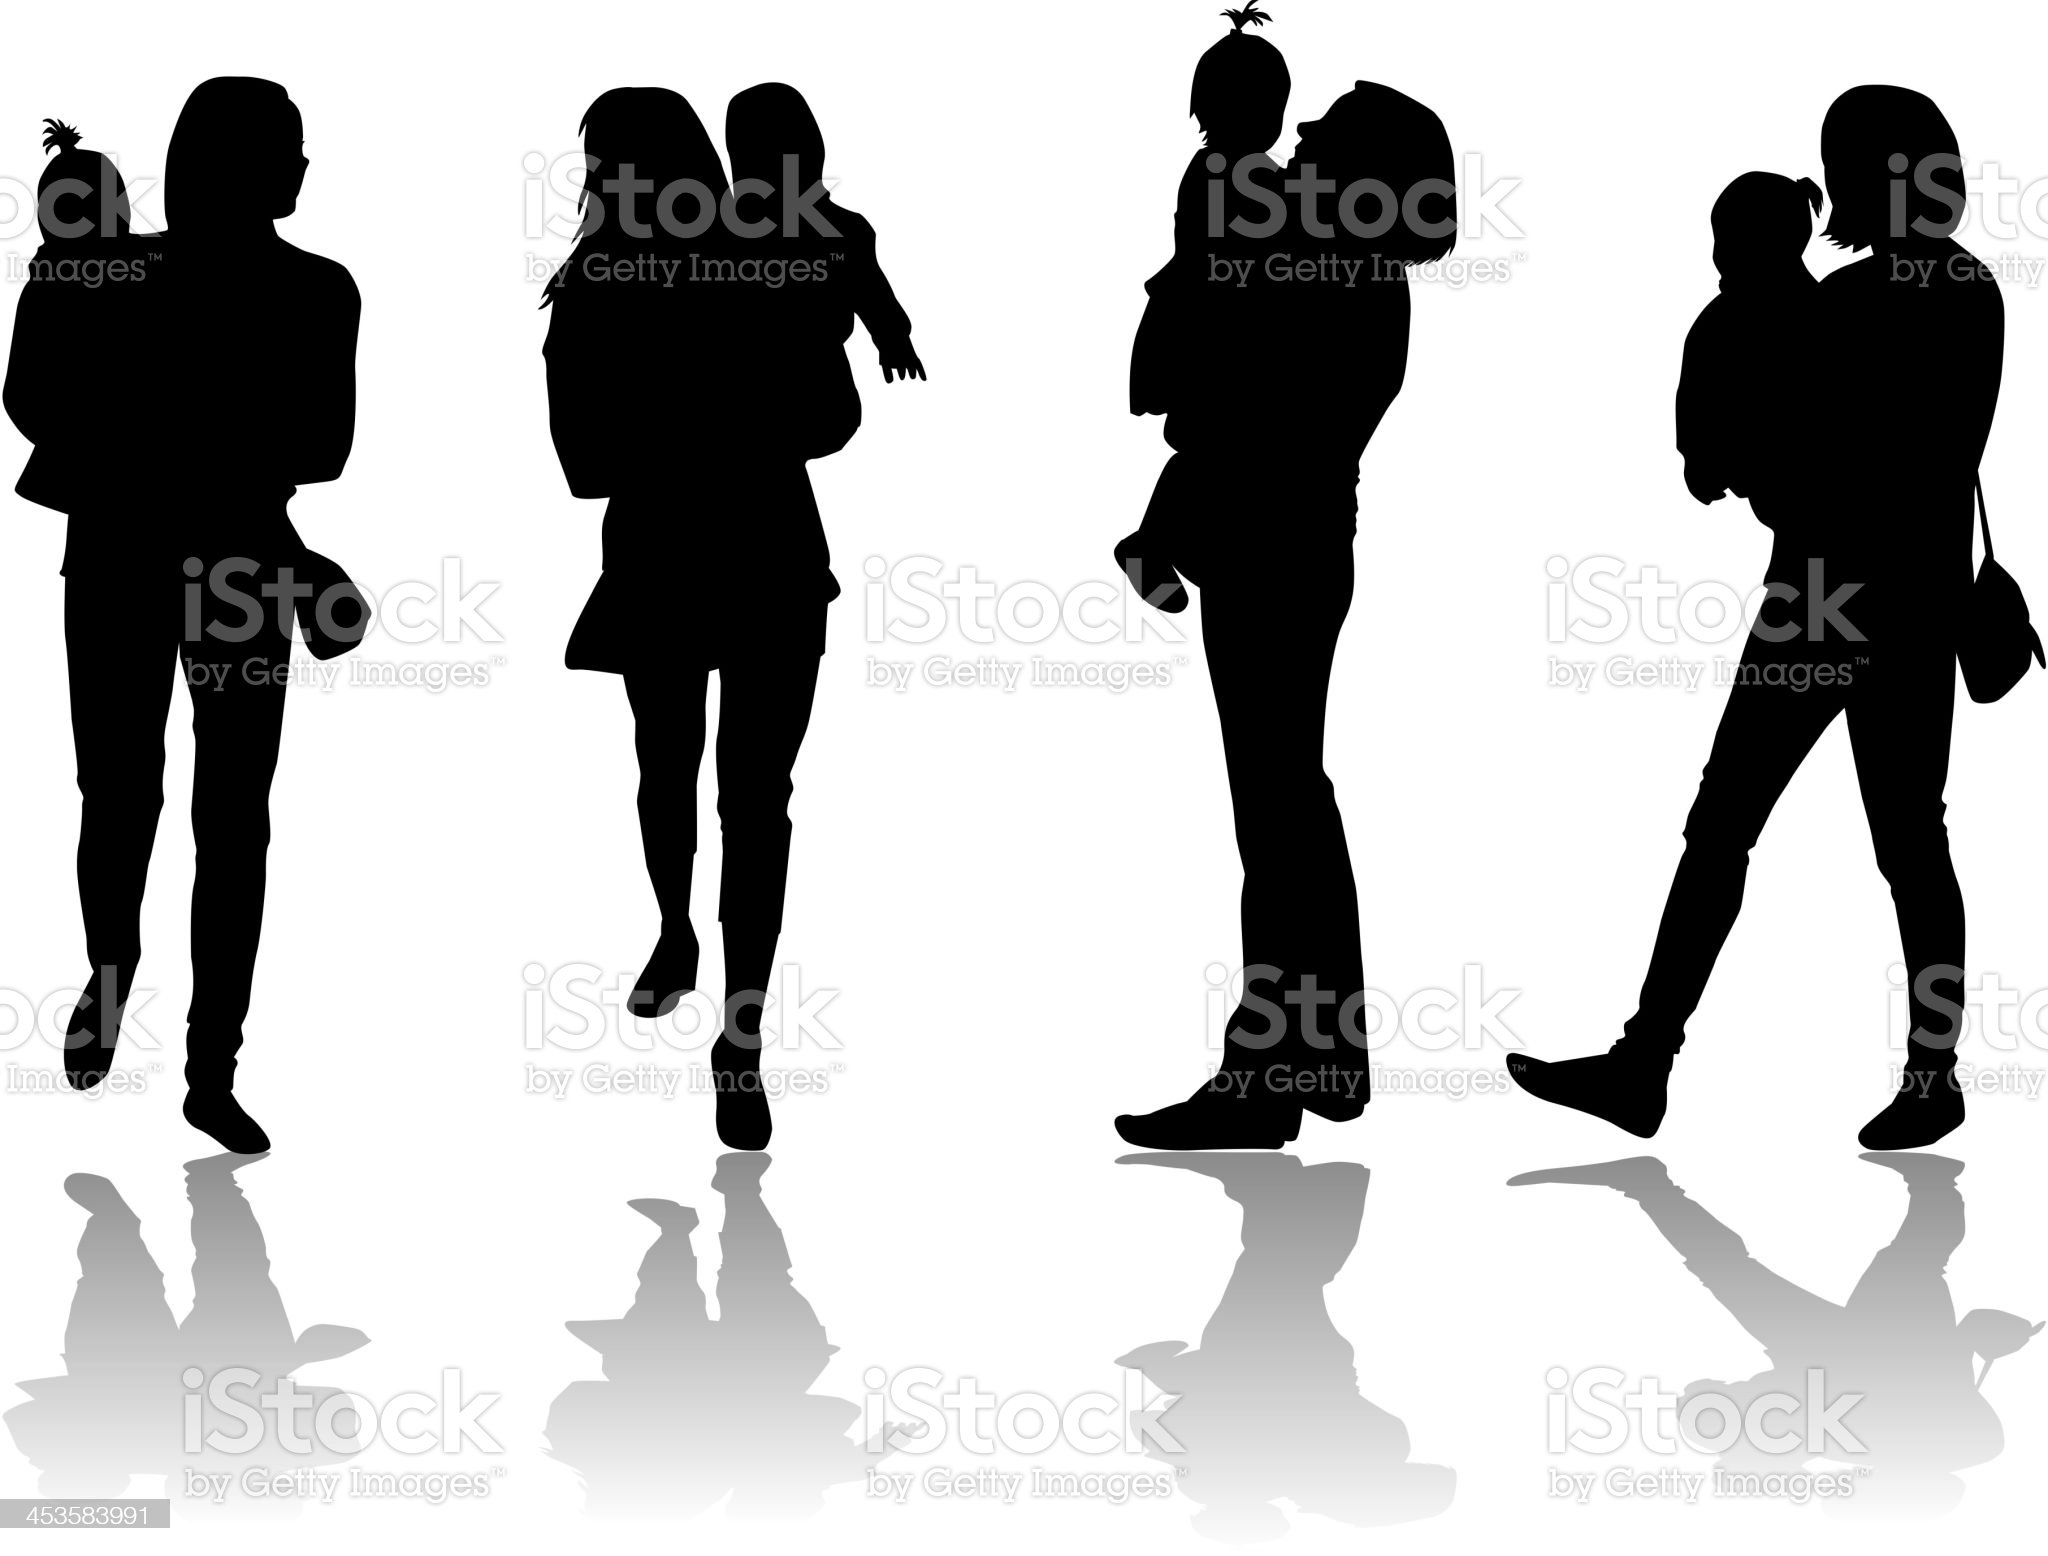 Family silhouette royalty-free stock vector art